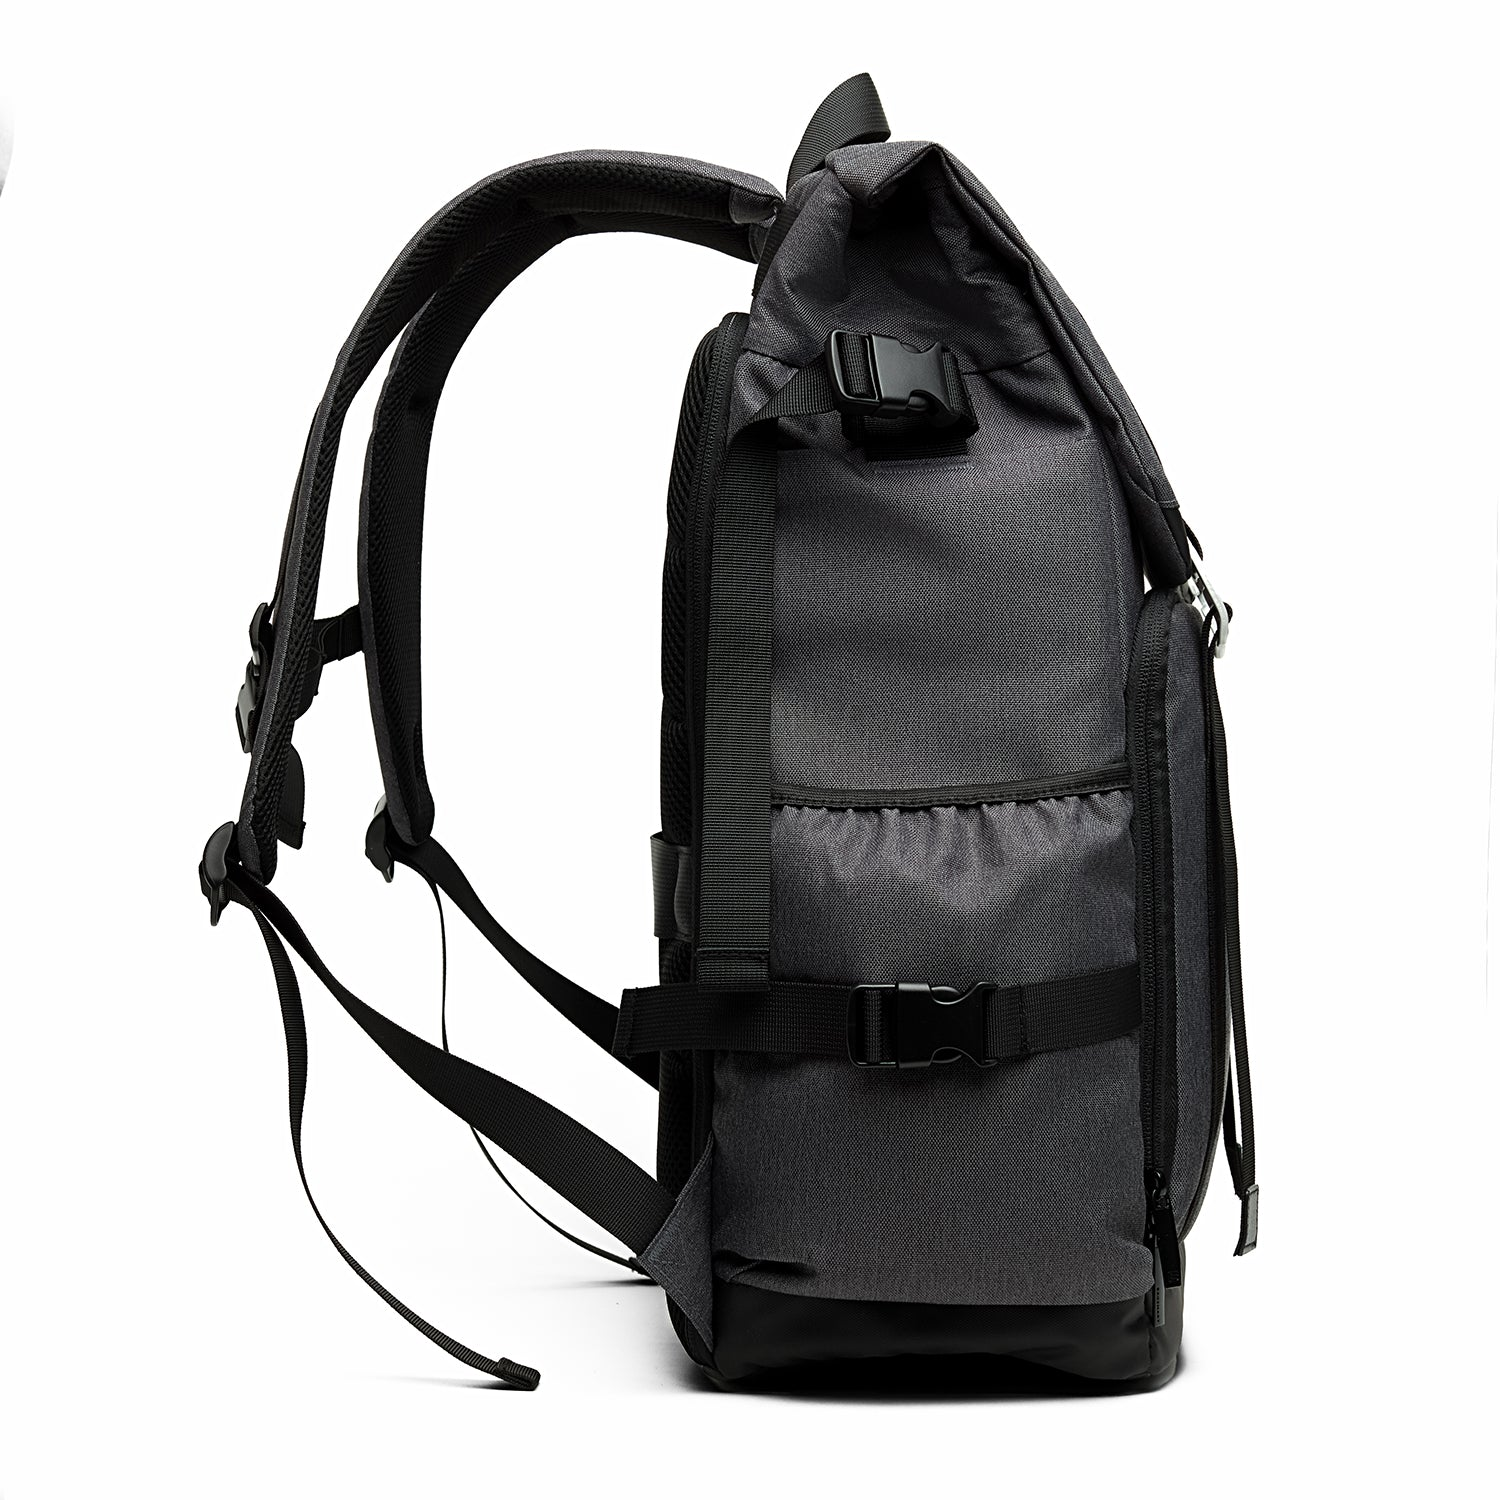 182a813d5e Best Large DSLR Backpack for Travel Hiking with Padded Custom ...